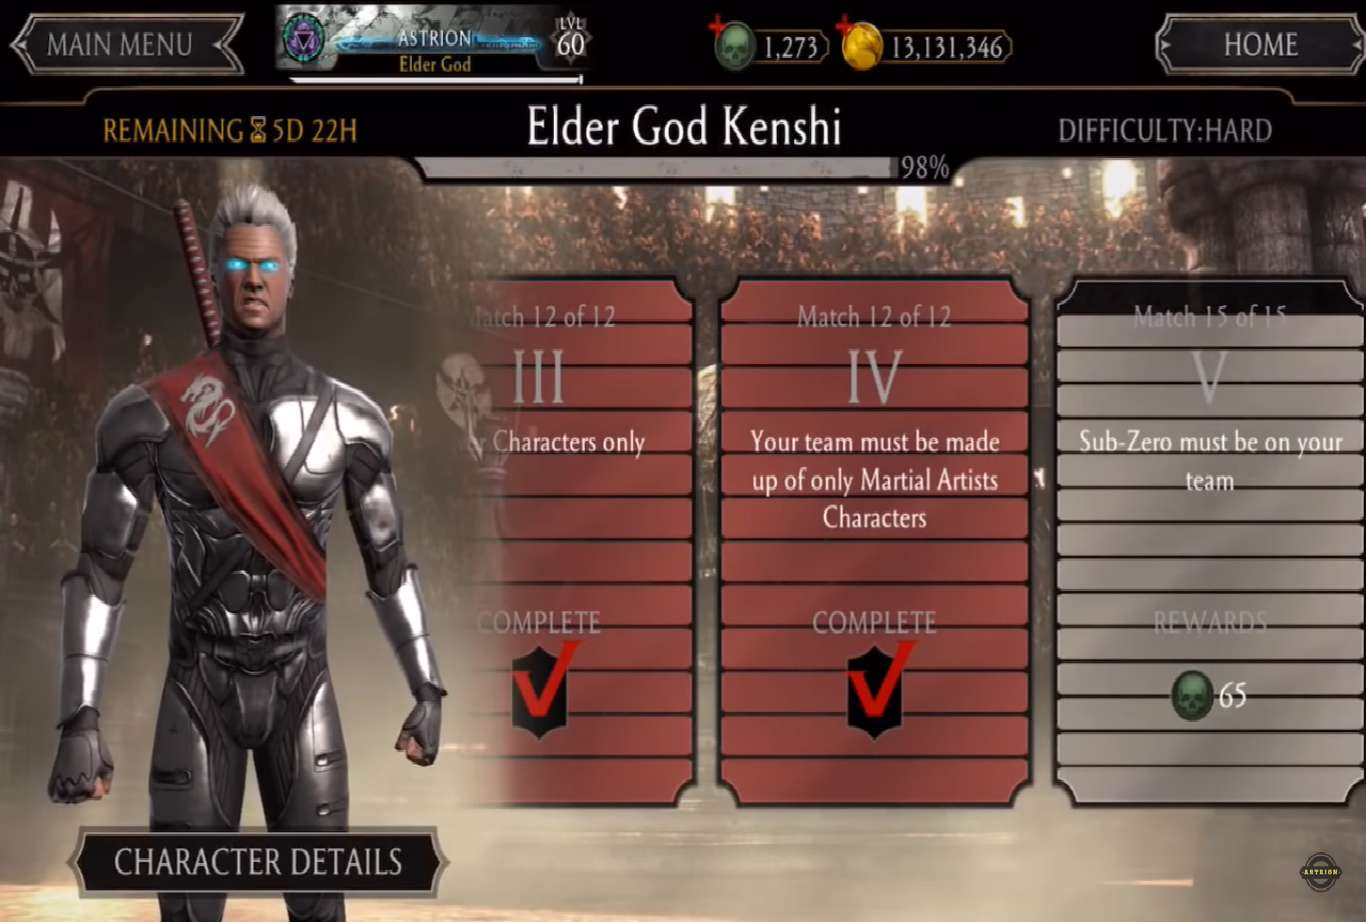 Mortal Kombat Mobile Update 2.4.1 Introduces The Elder God Kenshi Tower And Extends Triborg Sub Zero